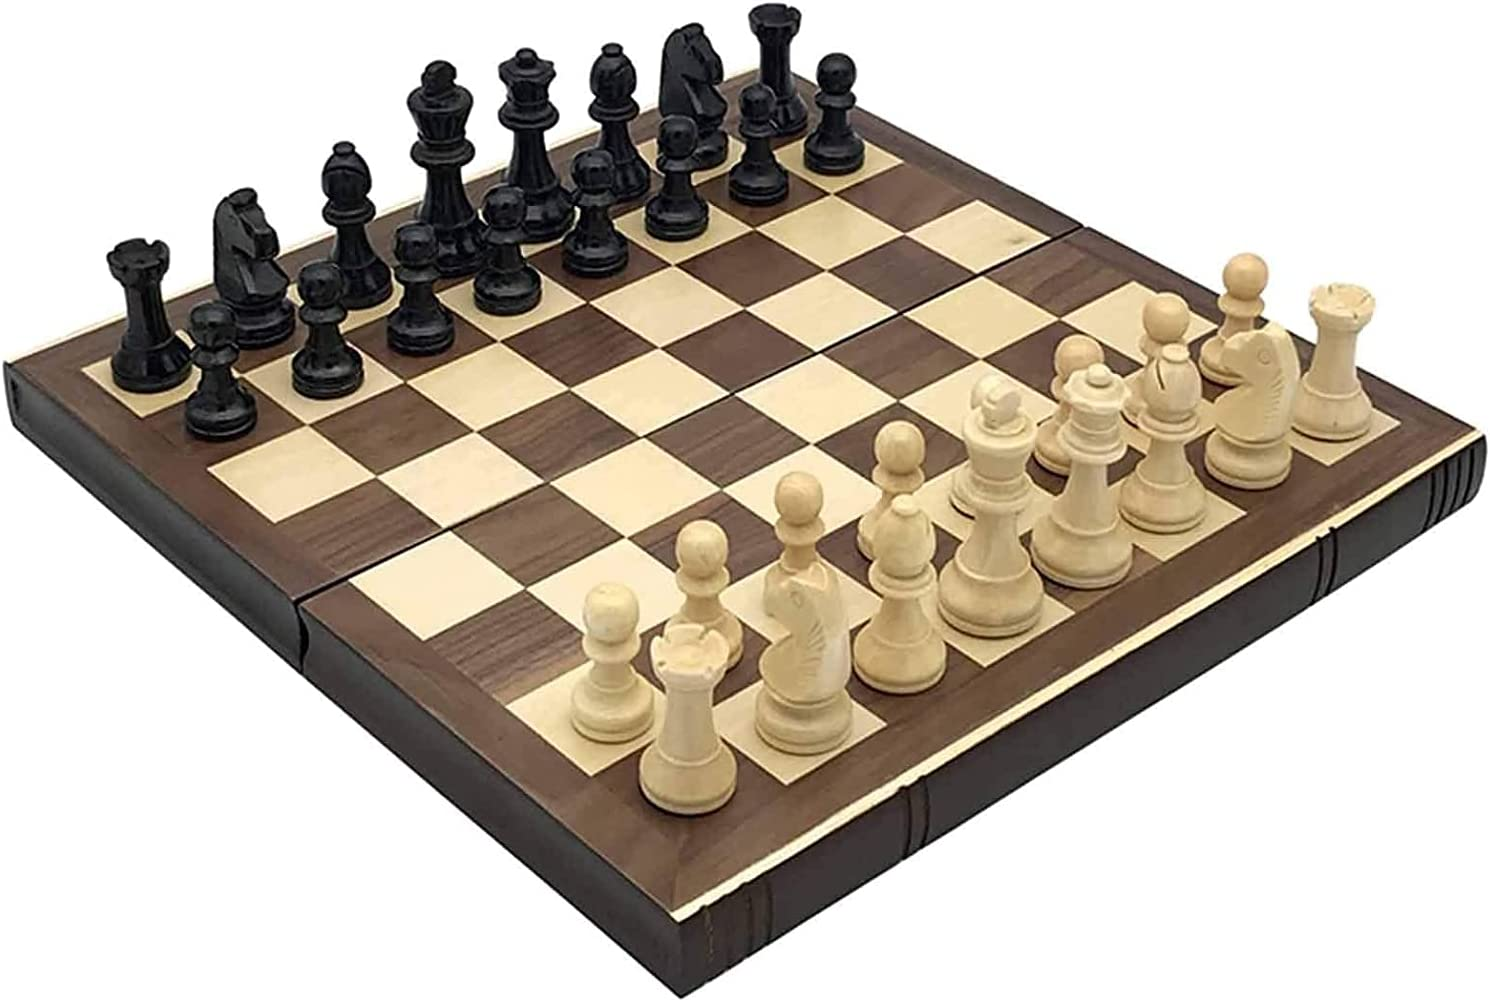 ZHZHUANG Chess Set Folding Board Wooden Solid Box Table Chessman New life Excellence